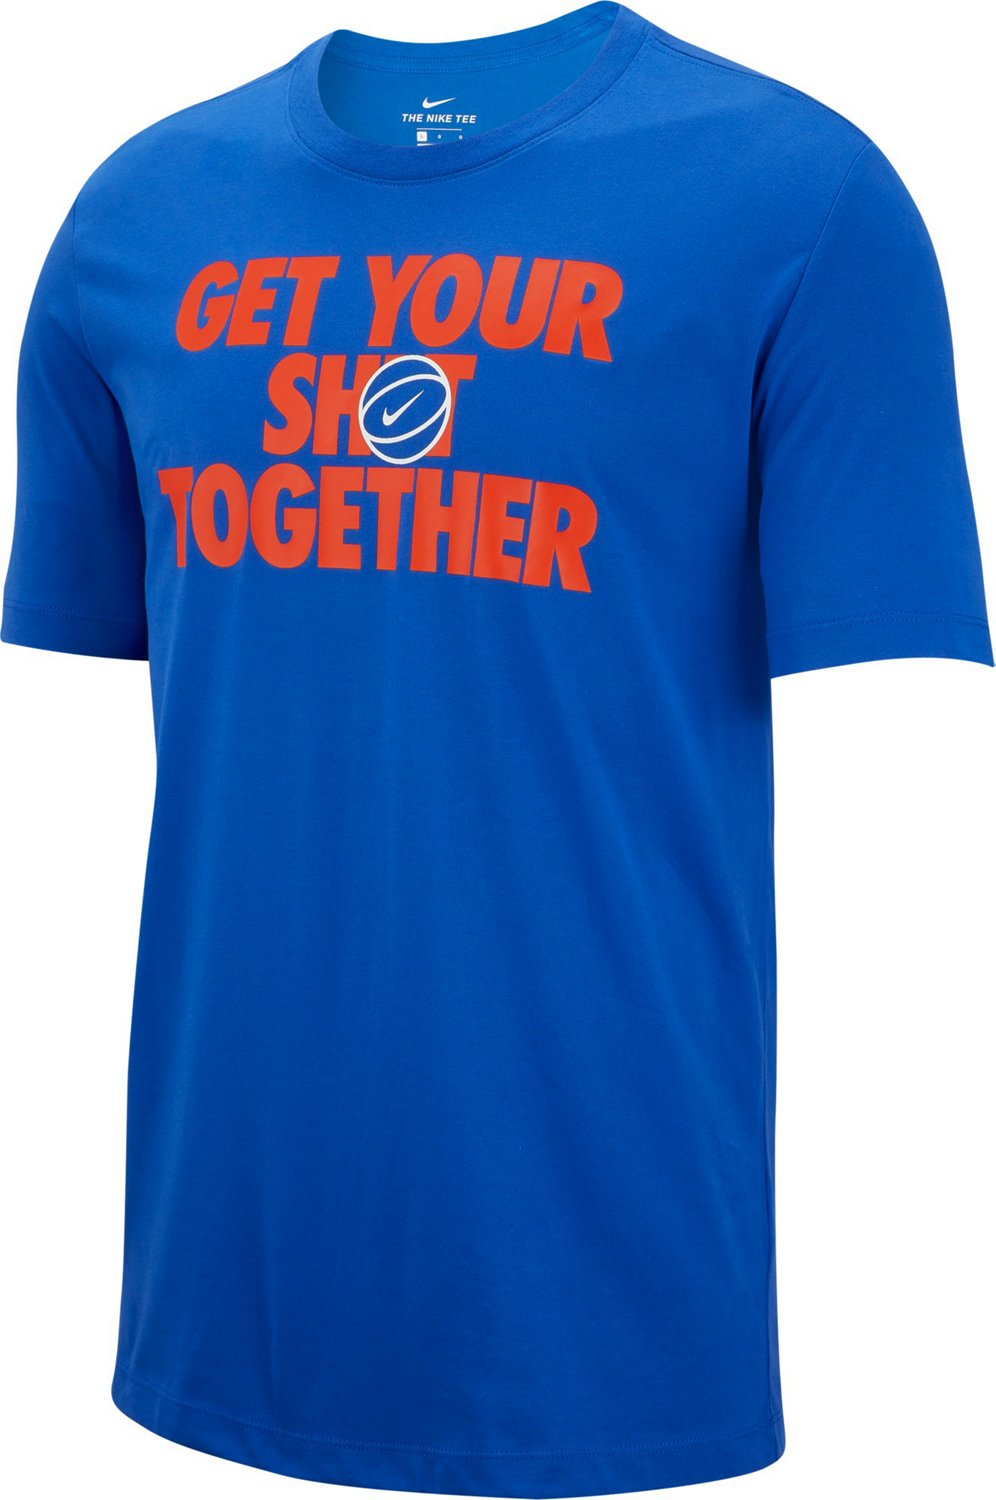 5543259a Display product reviews for Nike Men's Dry Basketball T-shirt